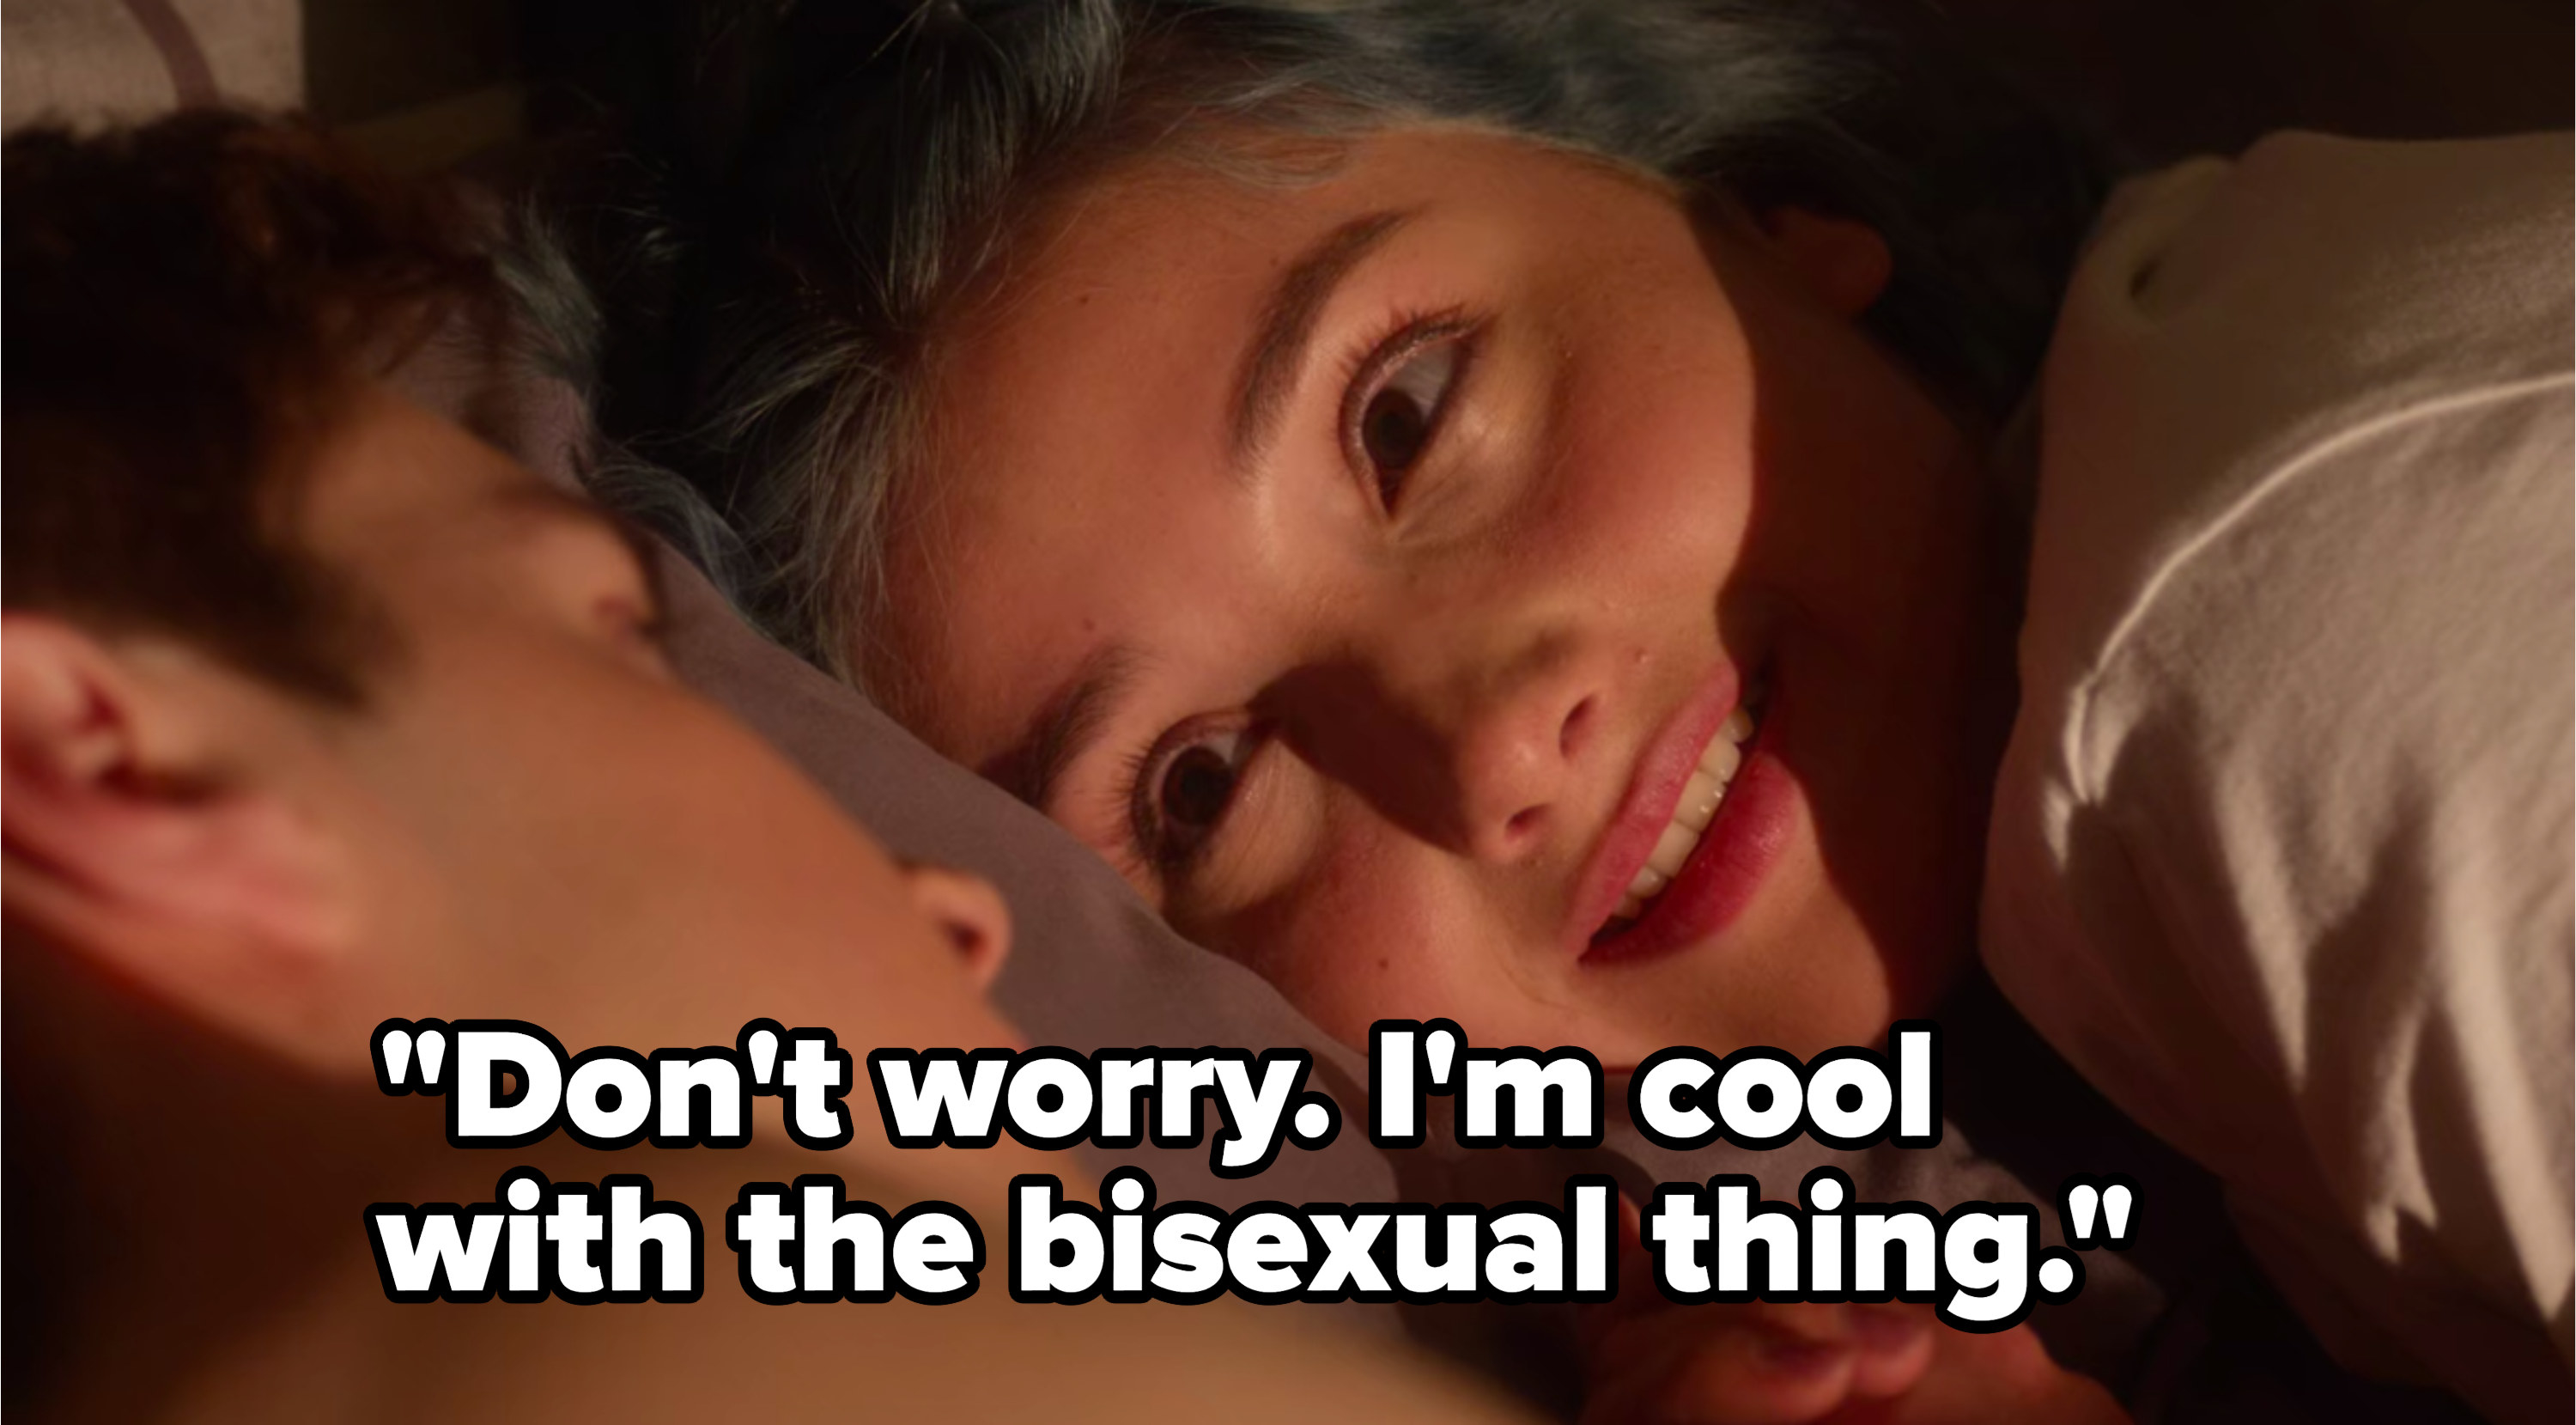 Lola tells Miles she's cool with him being bisexual